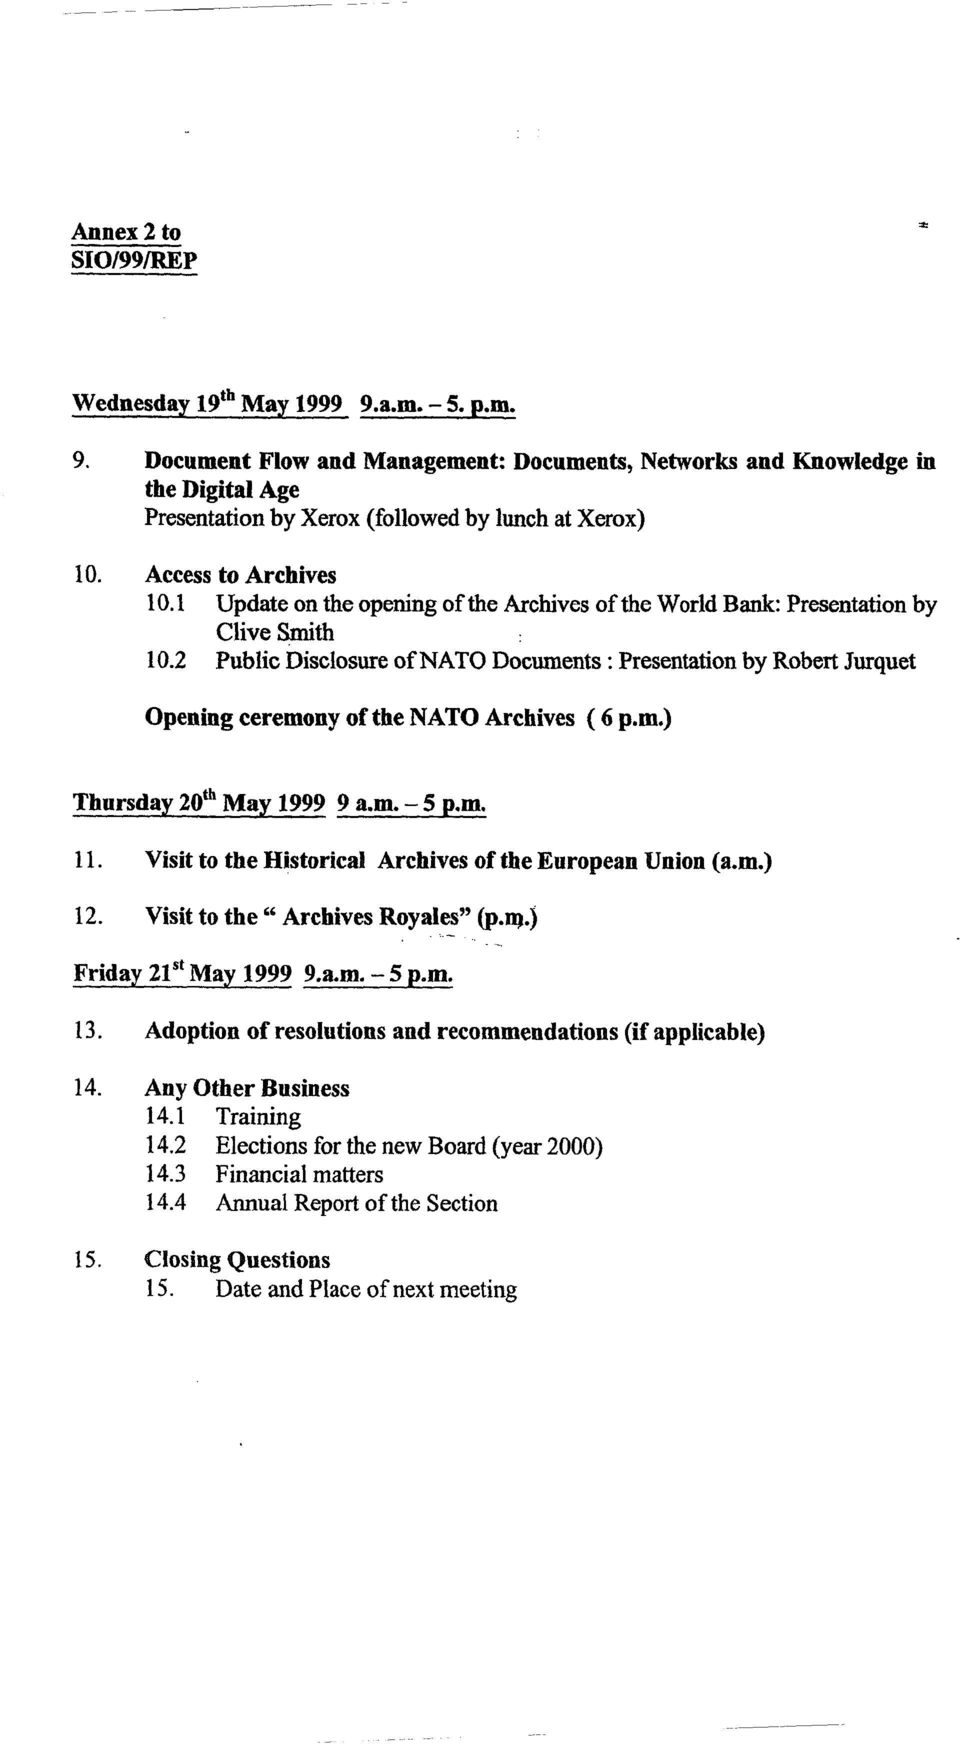 2 Public Disclosure of NATO Documents : Presentation by Robert Jurquet Opening ceremony of the NATO Archives ( 6 p.m.) Thursday 20th May 1999 9 a.m. - 5 p.m. 11.